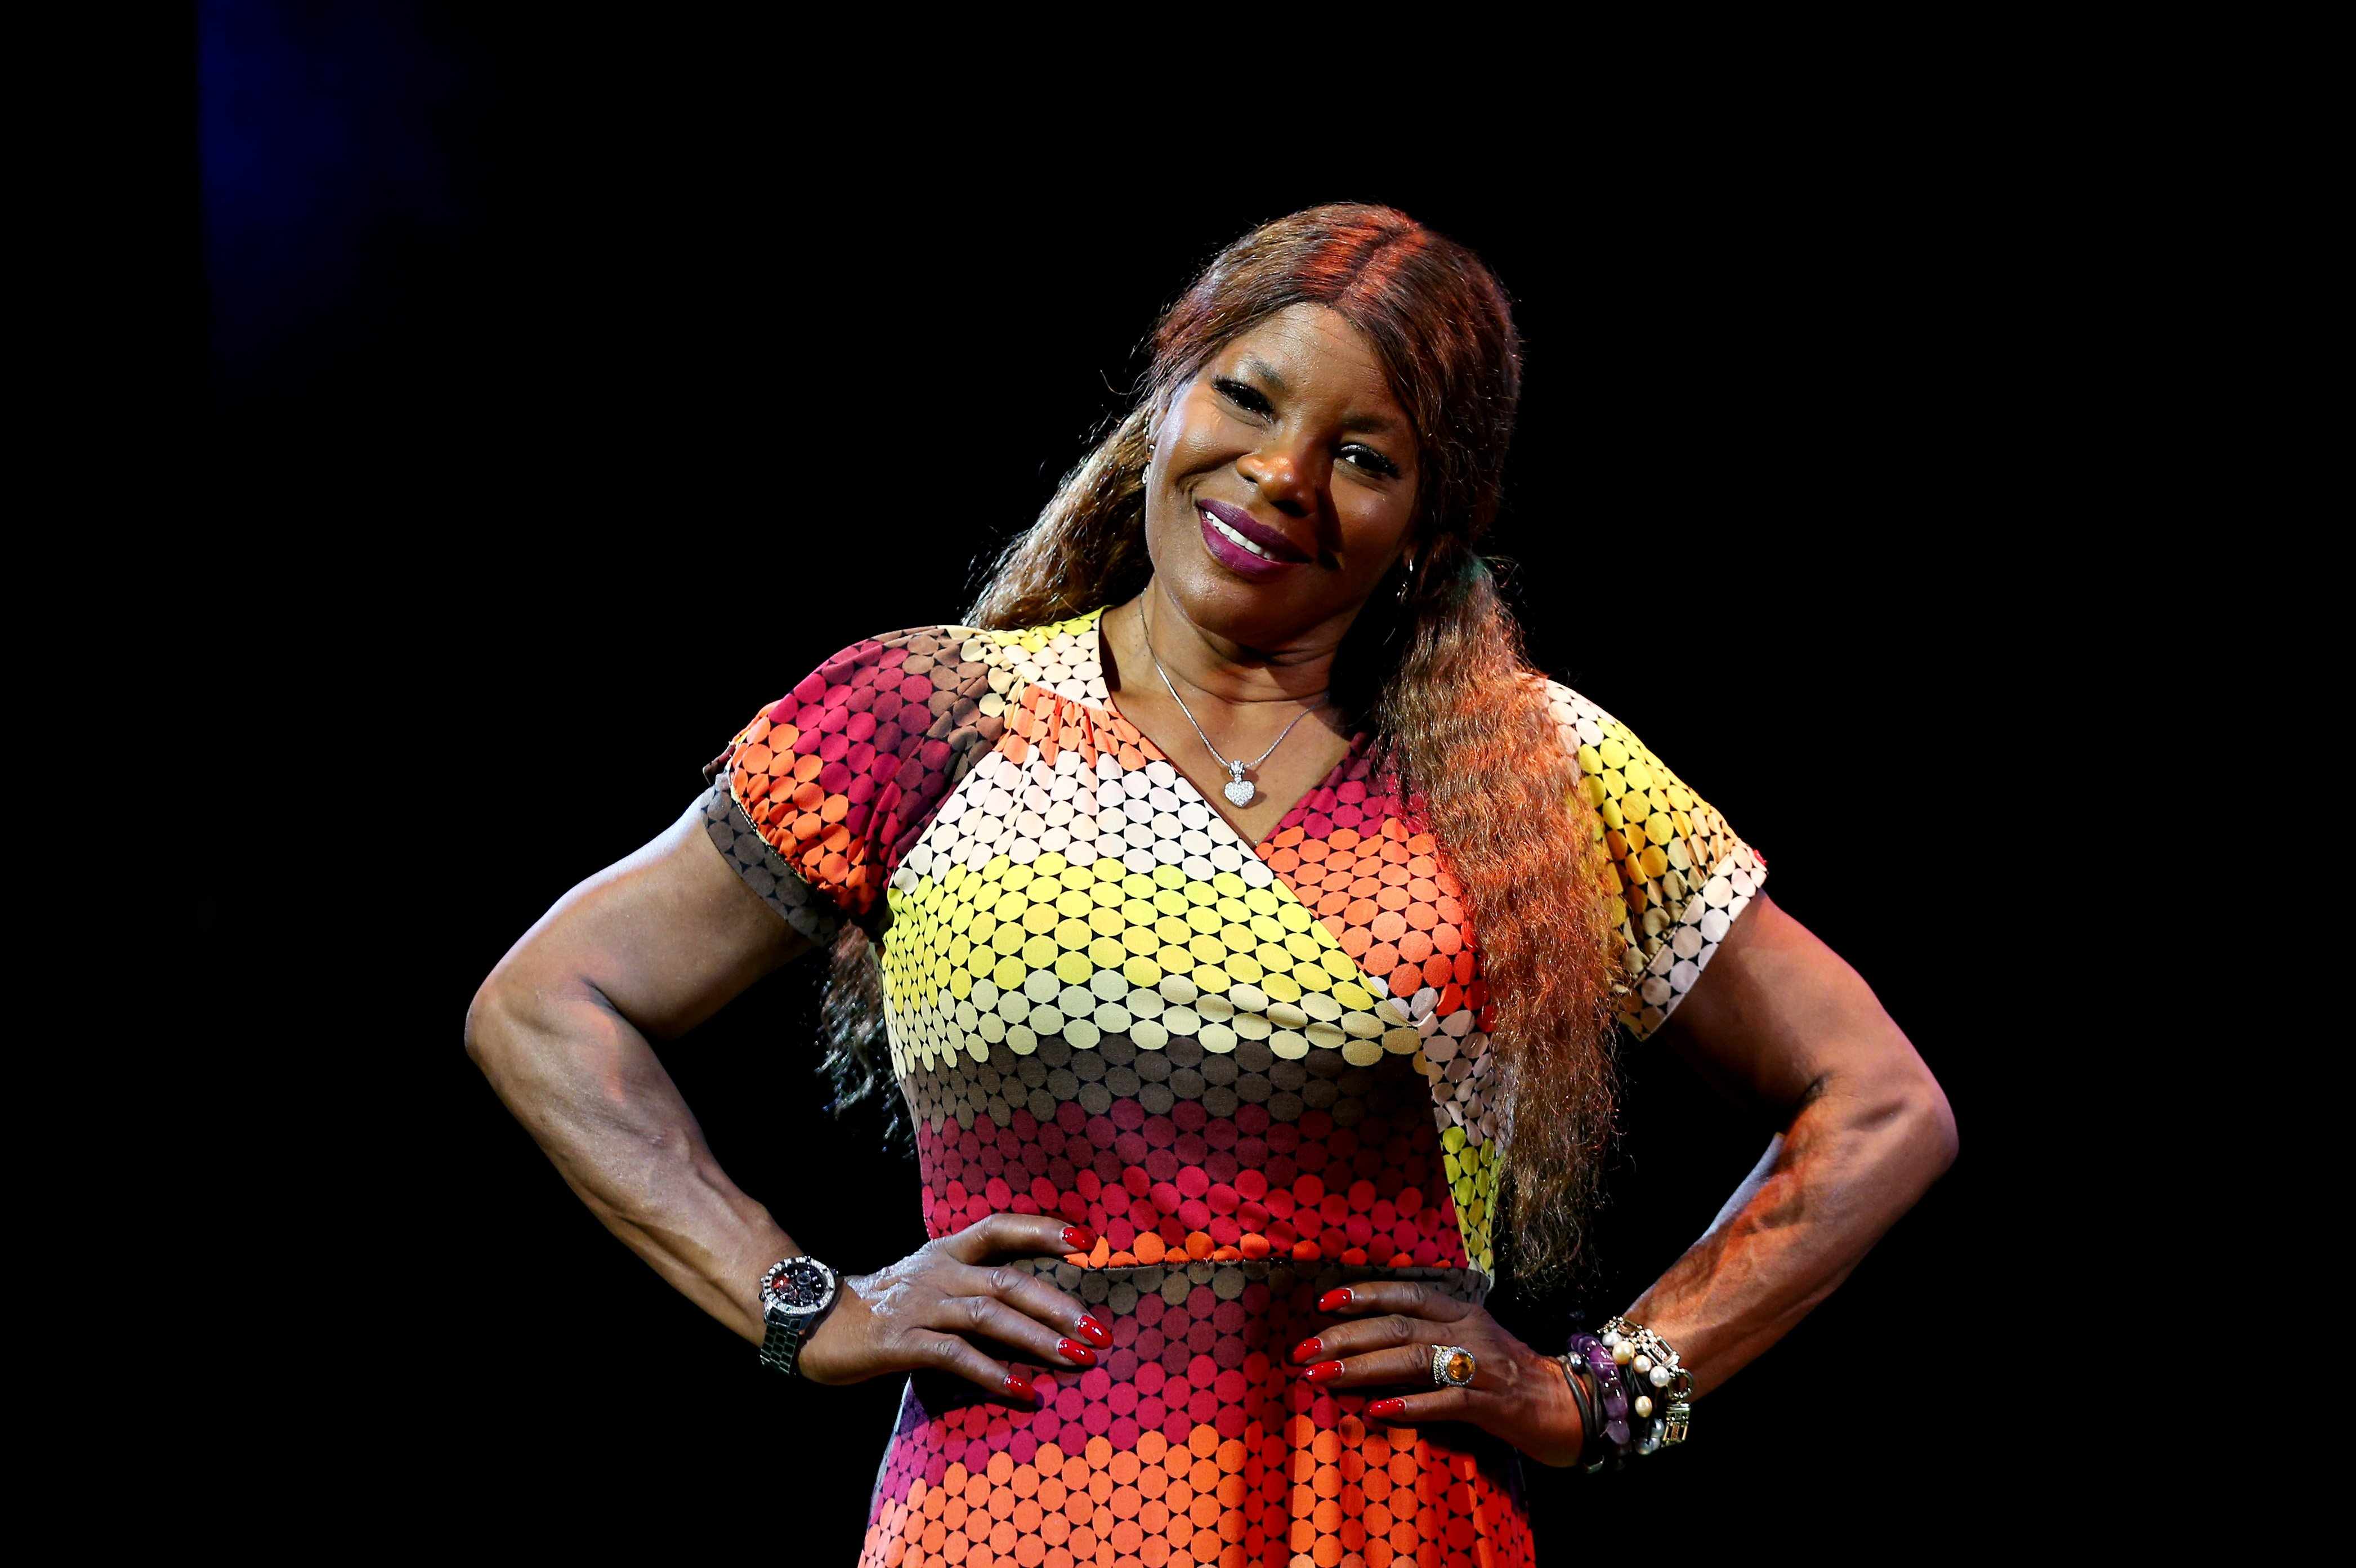 """Marcia Hines during a production media call for """"Shrek: The Musical"""" on January 03, 2020, Sydney, Australia. 